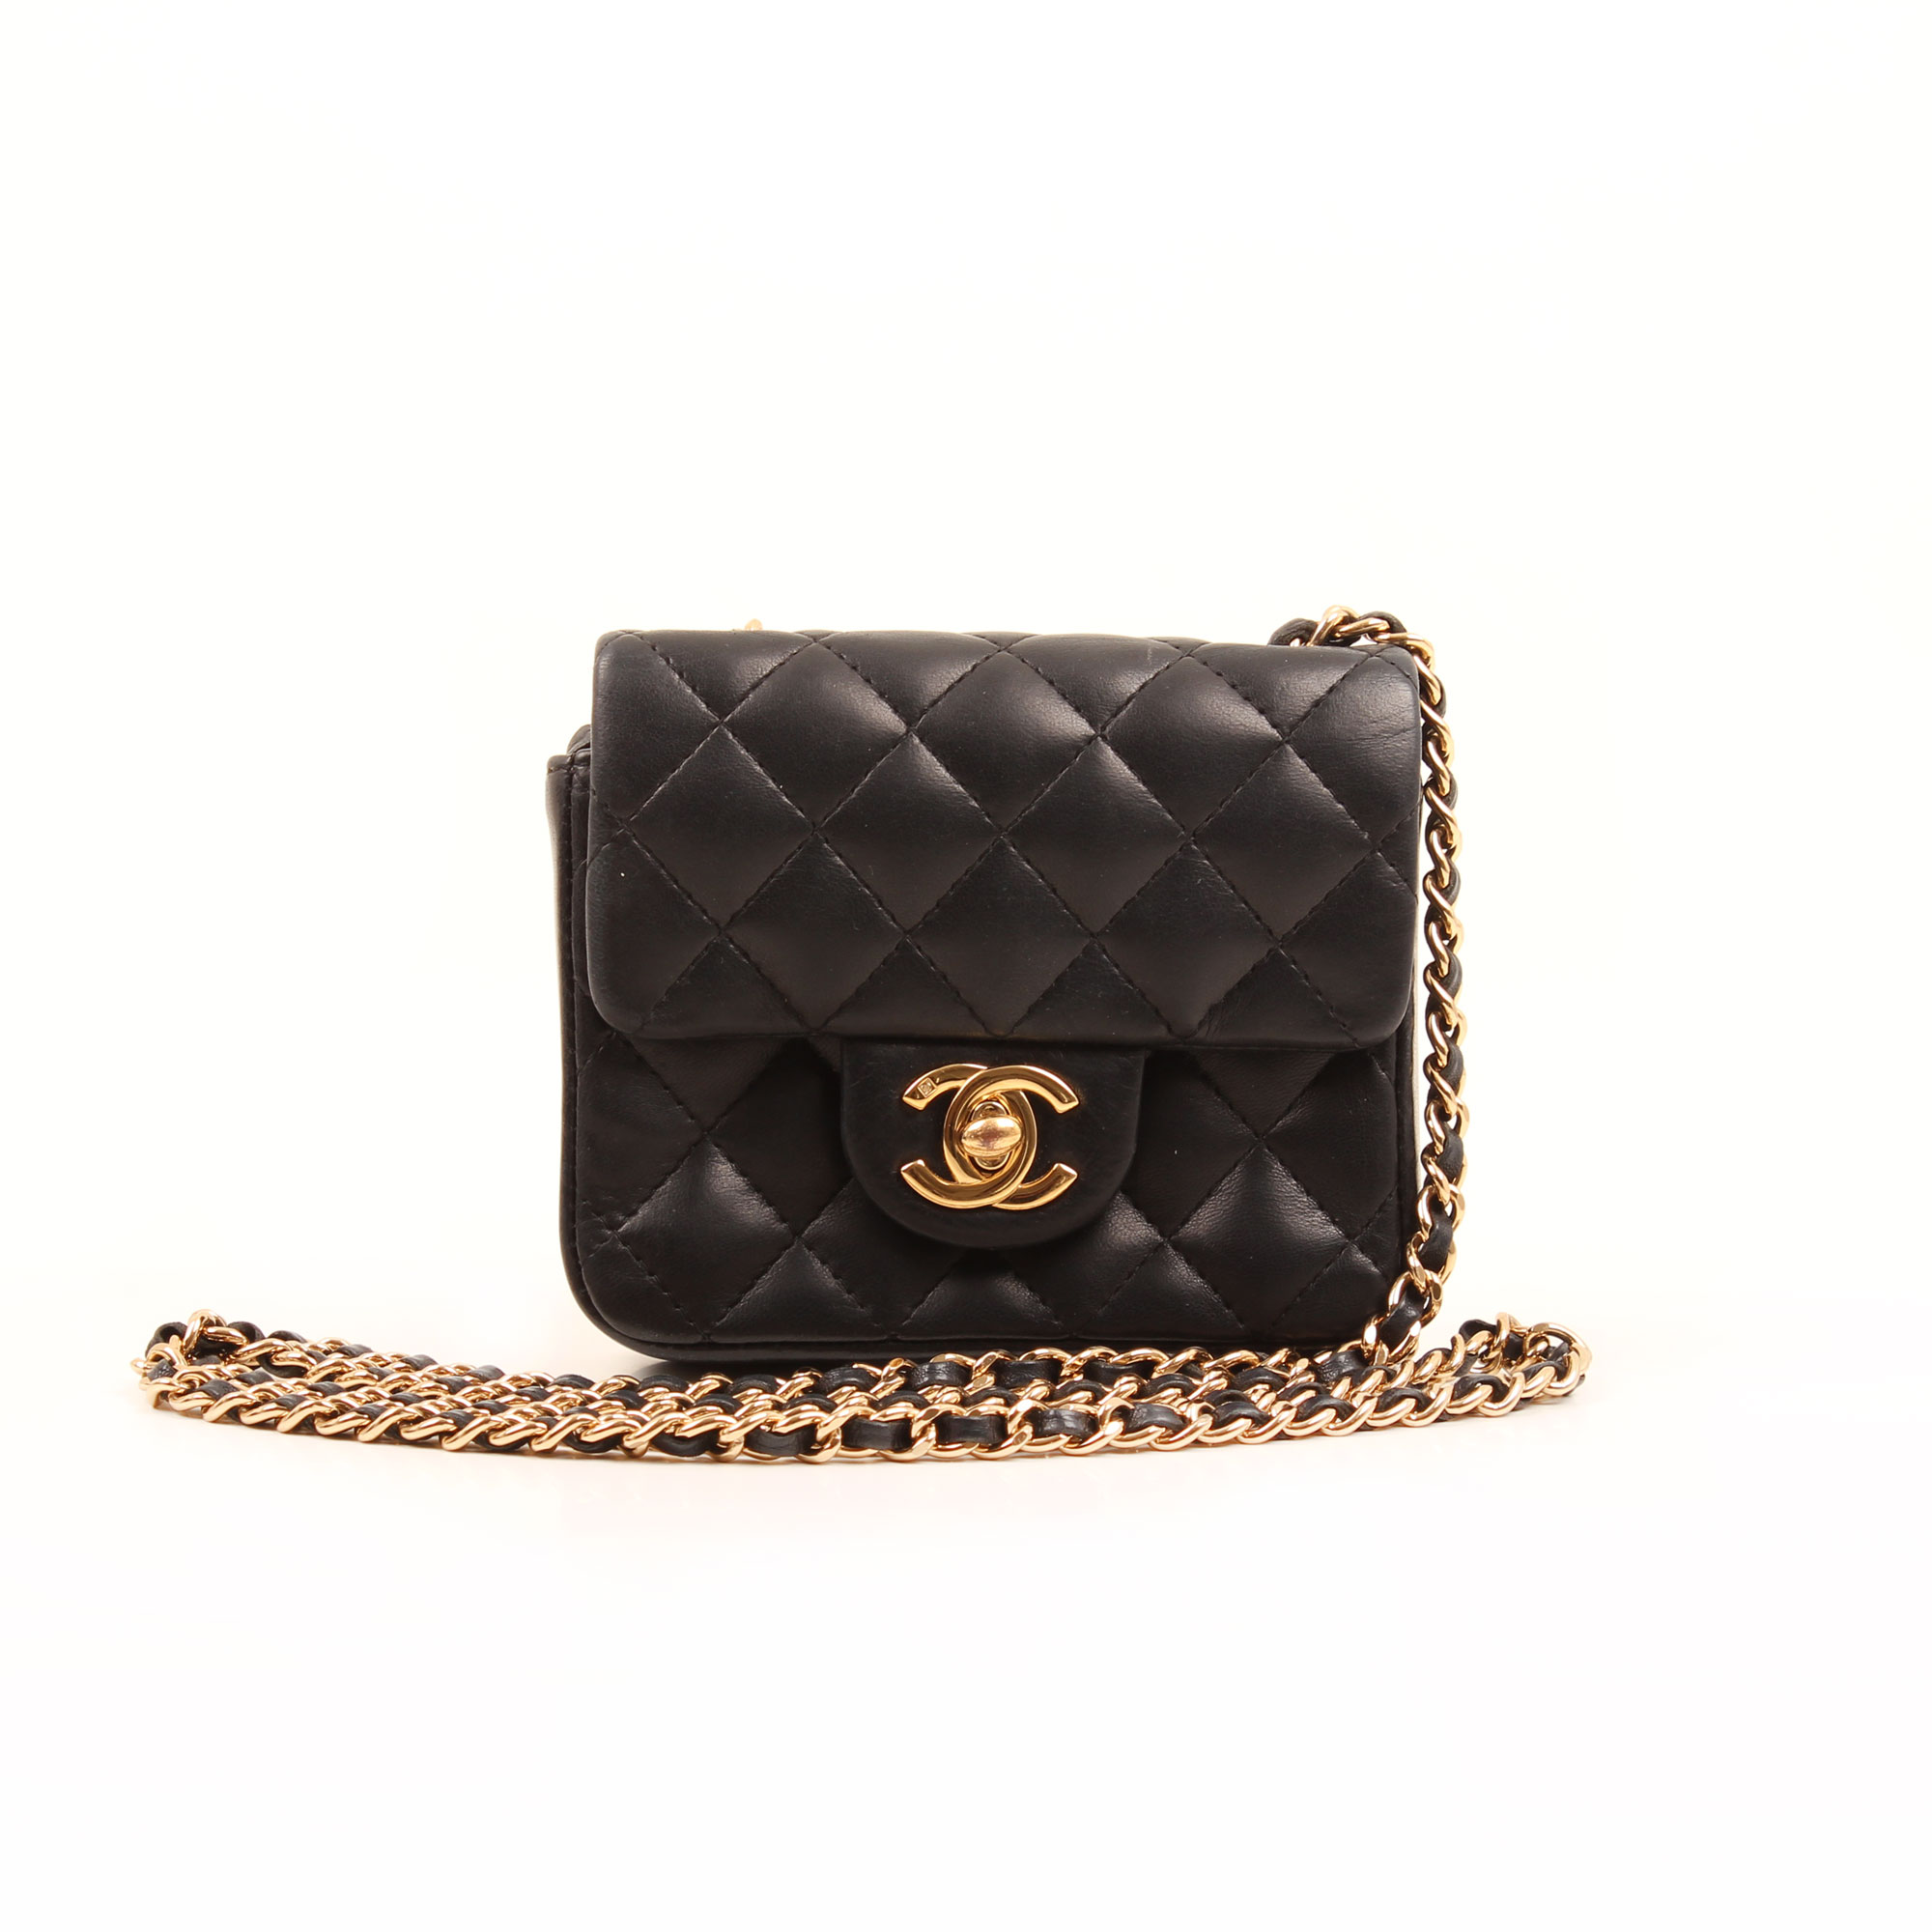 Front image of chanel micro mini black bag